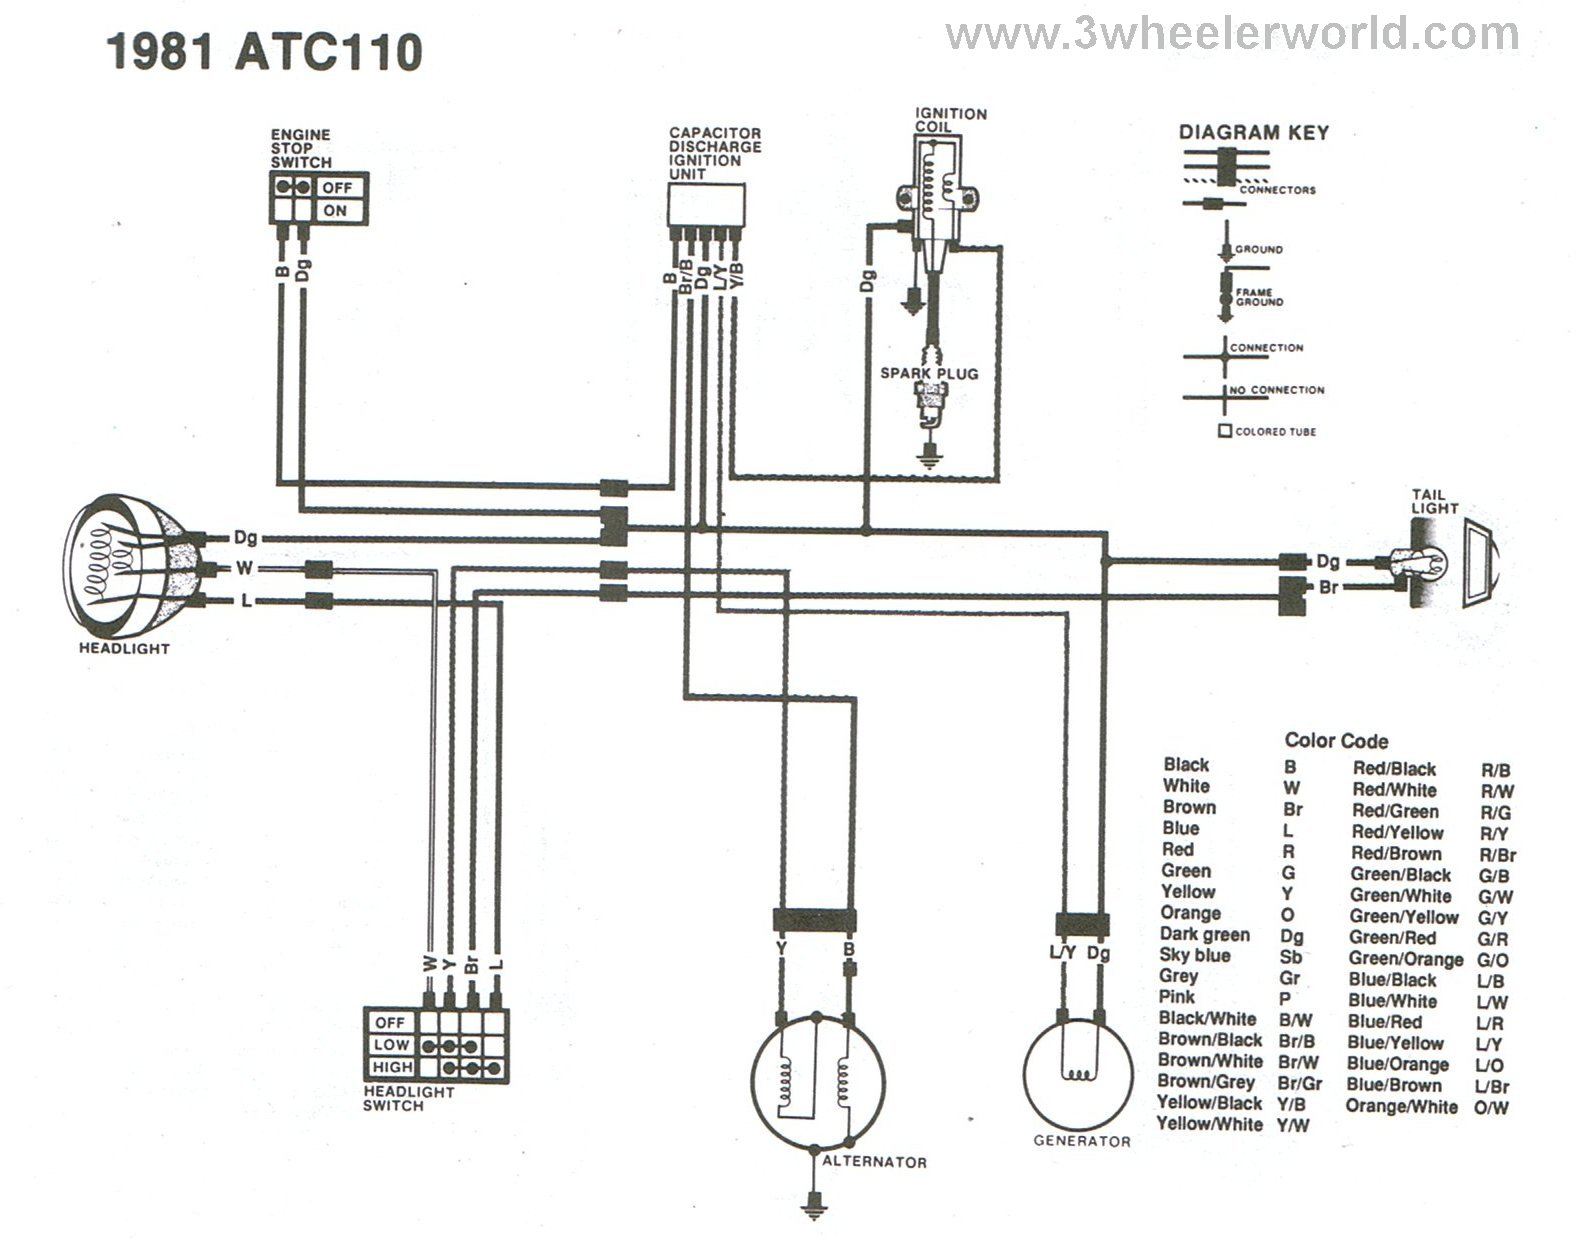 Atc 110 Wiring Diagram - Everything About Wiring Diagram •  Outlet Wiring Diagram on 110 outlet plug, simple inverter circuit diagram, 110 outlet dimensions, outlet connection diagram, 110 outlet wattage, switch outlet diagram, wall outlet diagram, 110 ac outlet diagram, 110 outlet with usb, ground socket wall plug diagram, 110v outlet diagram, electrical outlet diagram, 110 outlet drawing, residential circuit breaker panel diagram,